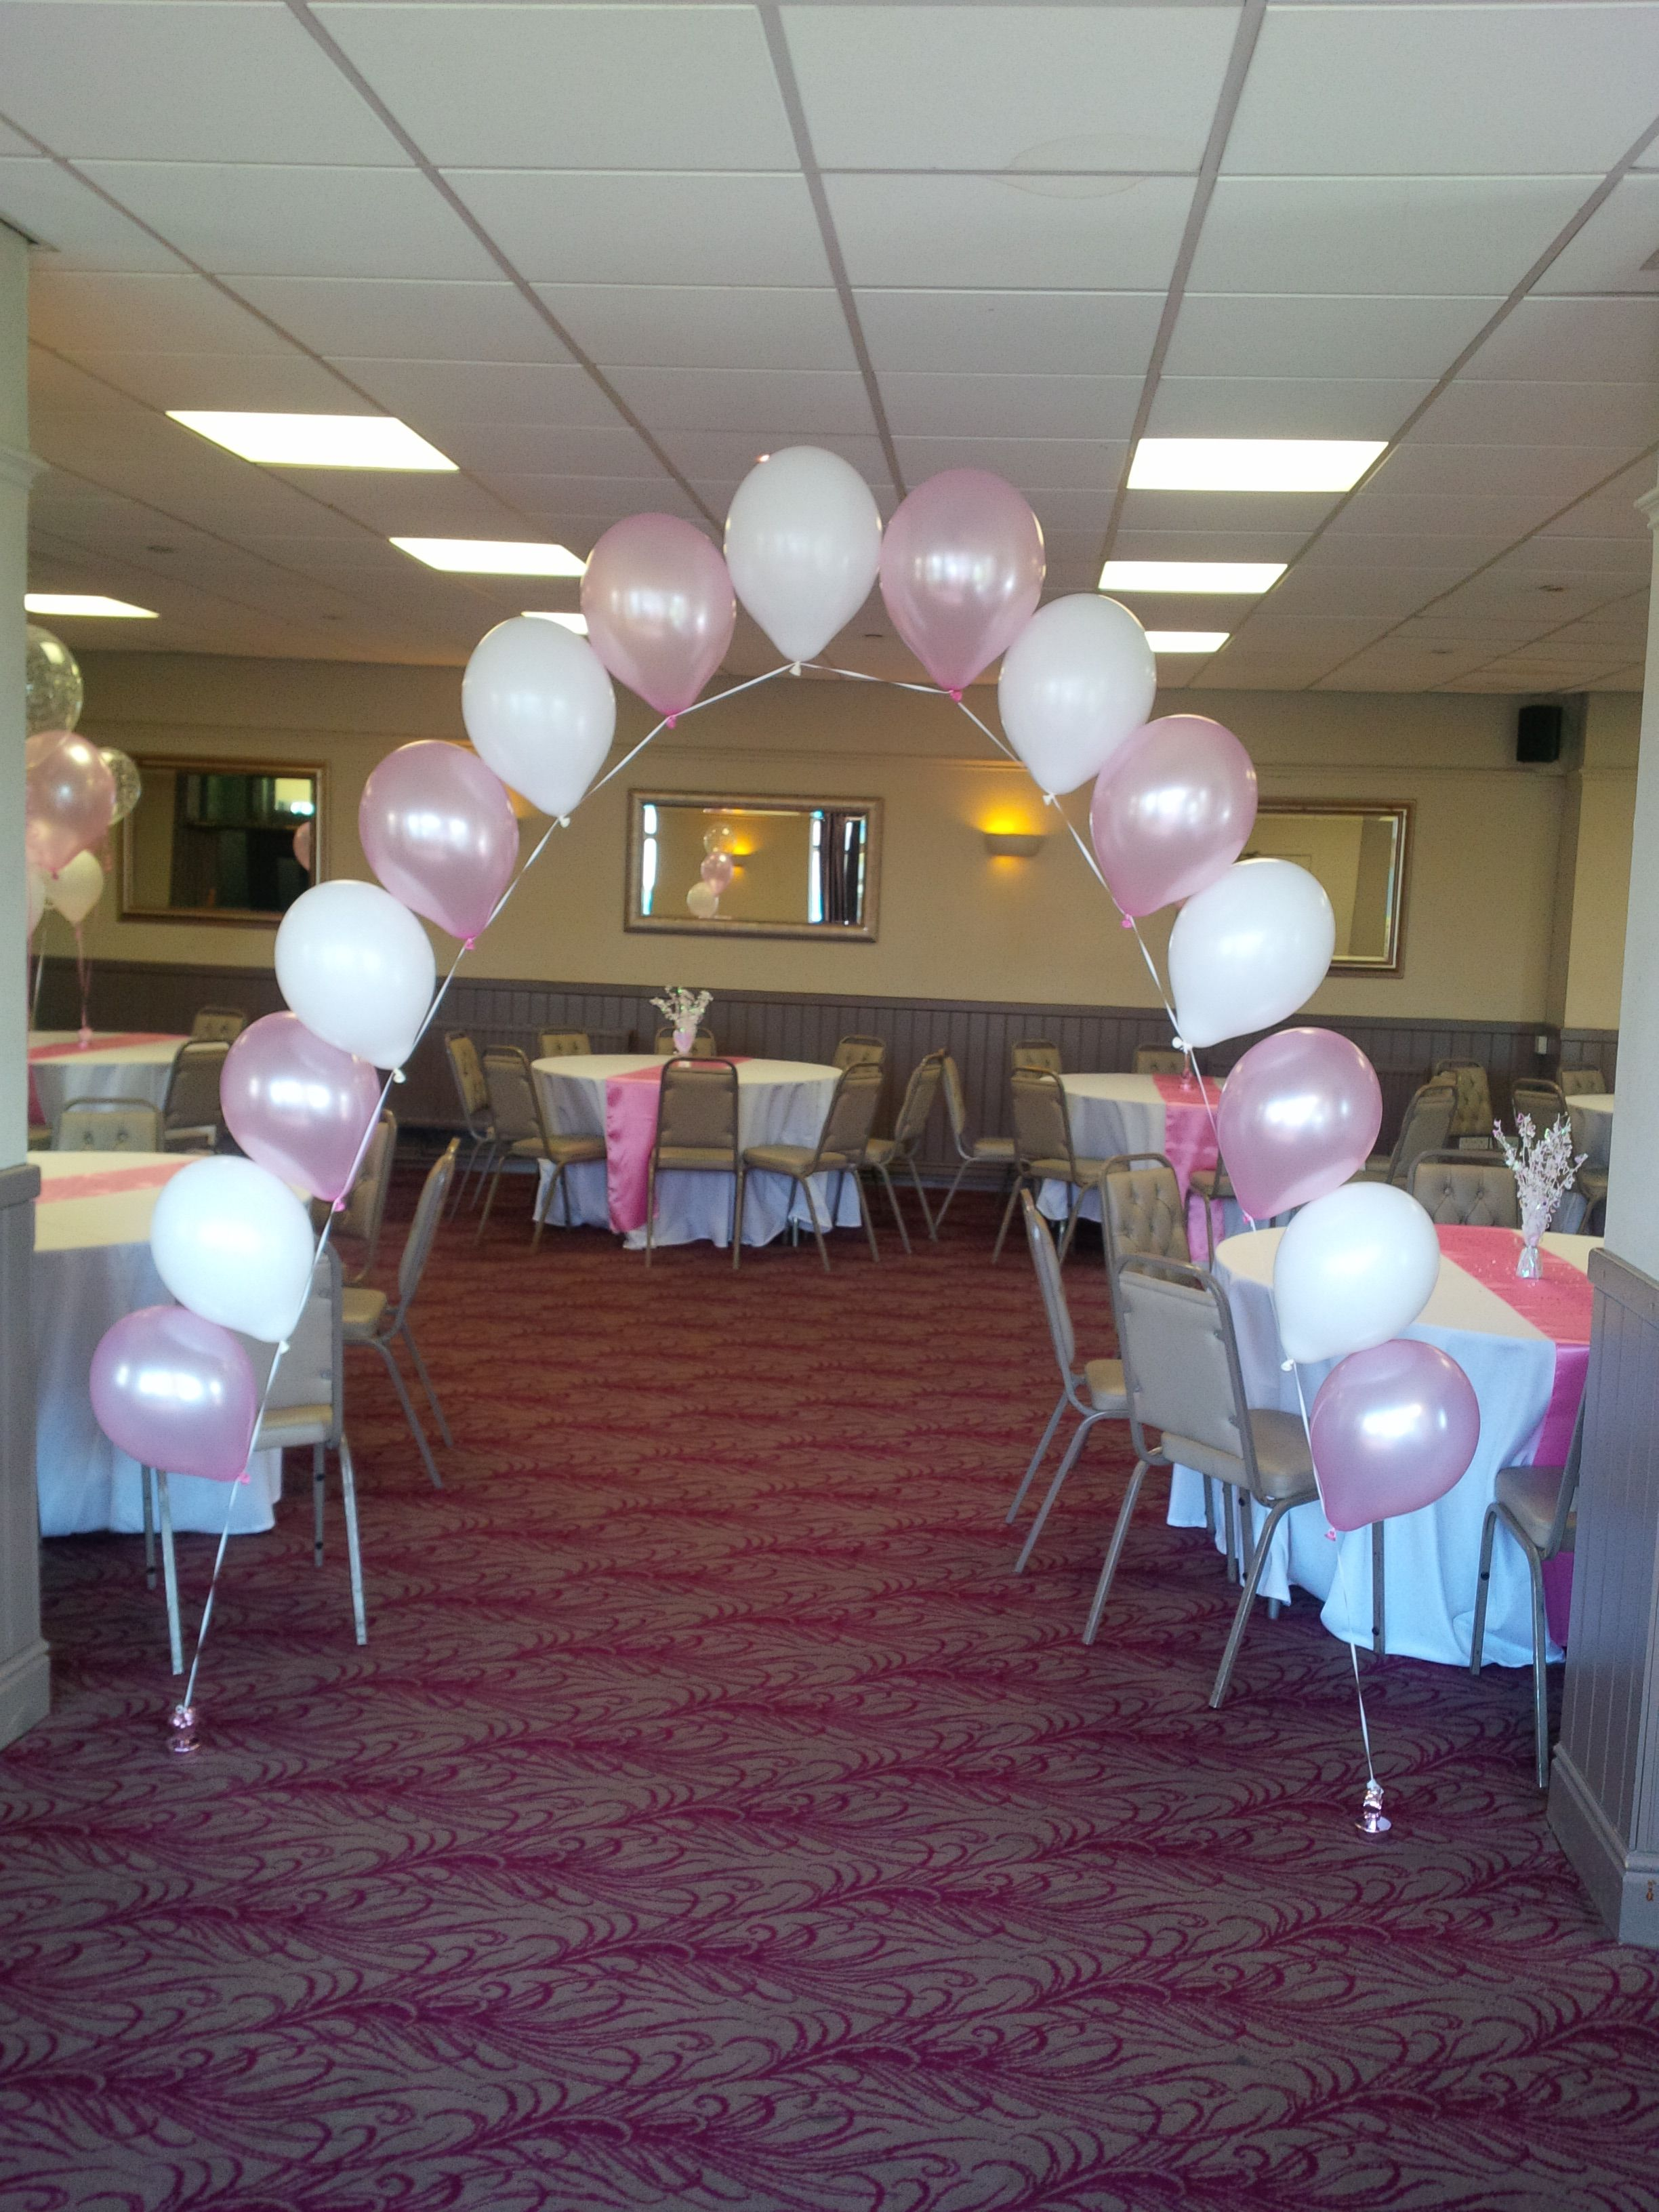 Balloon Arch  Pink & White Entrance To Function Suite